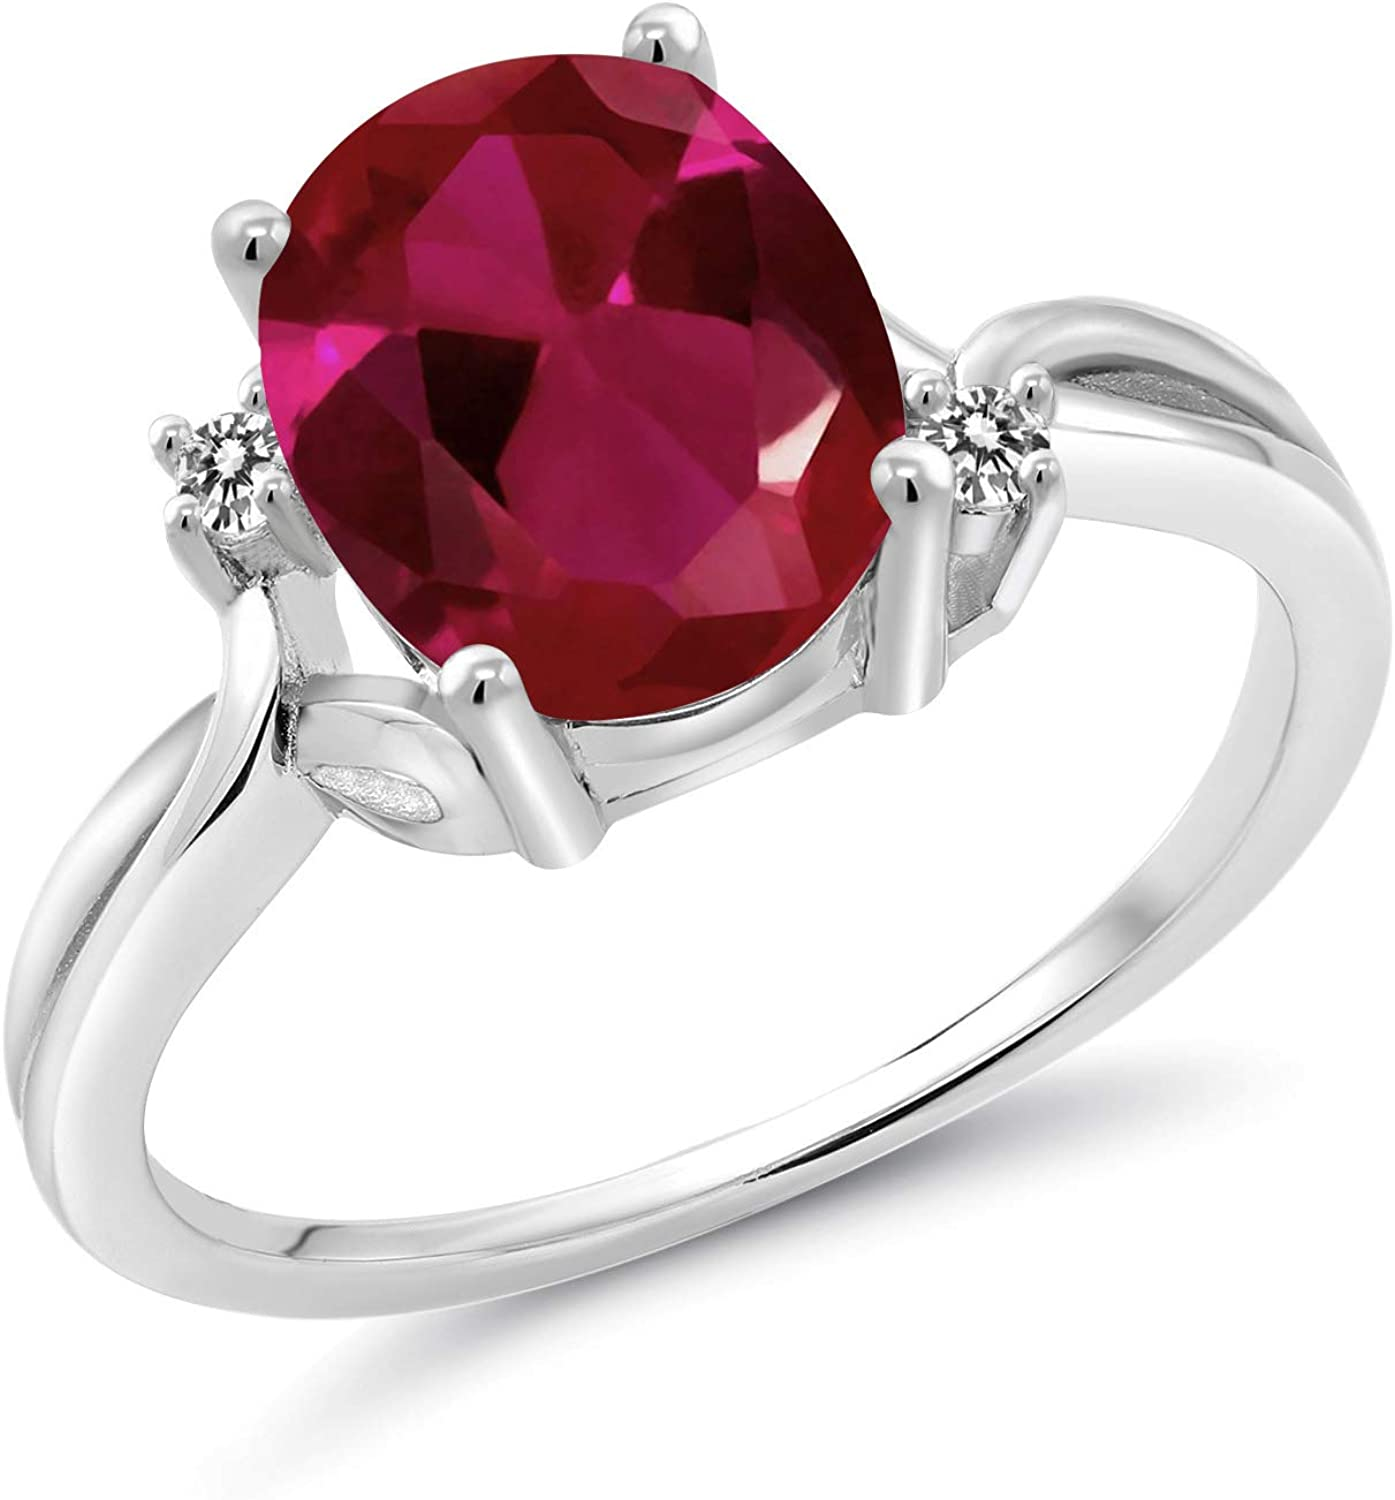 Gem Stone Spasm price King 2.53 Ct Oval Red 925 Ruby Inventory cleanup selling sale White Diamond S Created